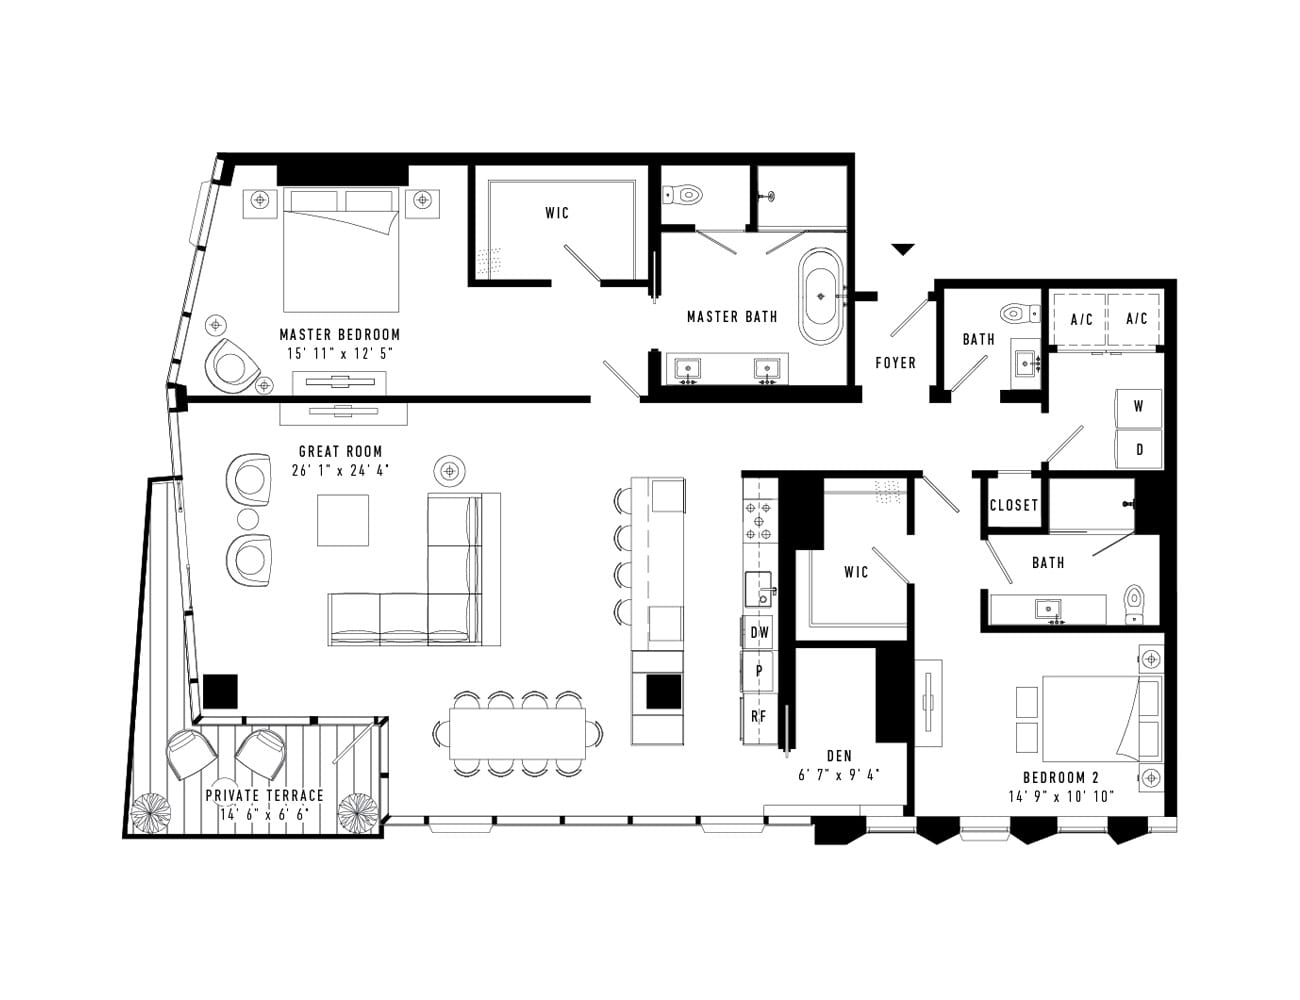 UNIT3A-Floorplan_111915 Image